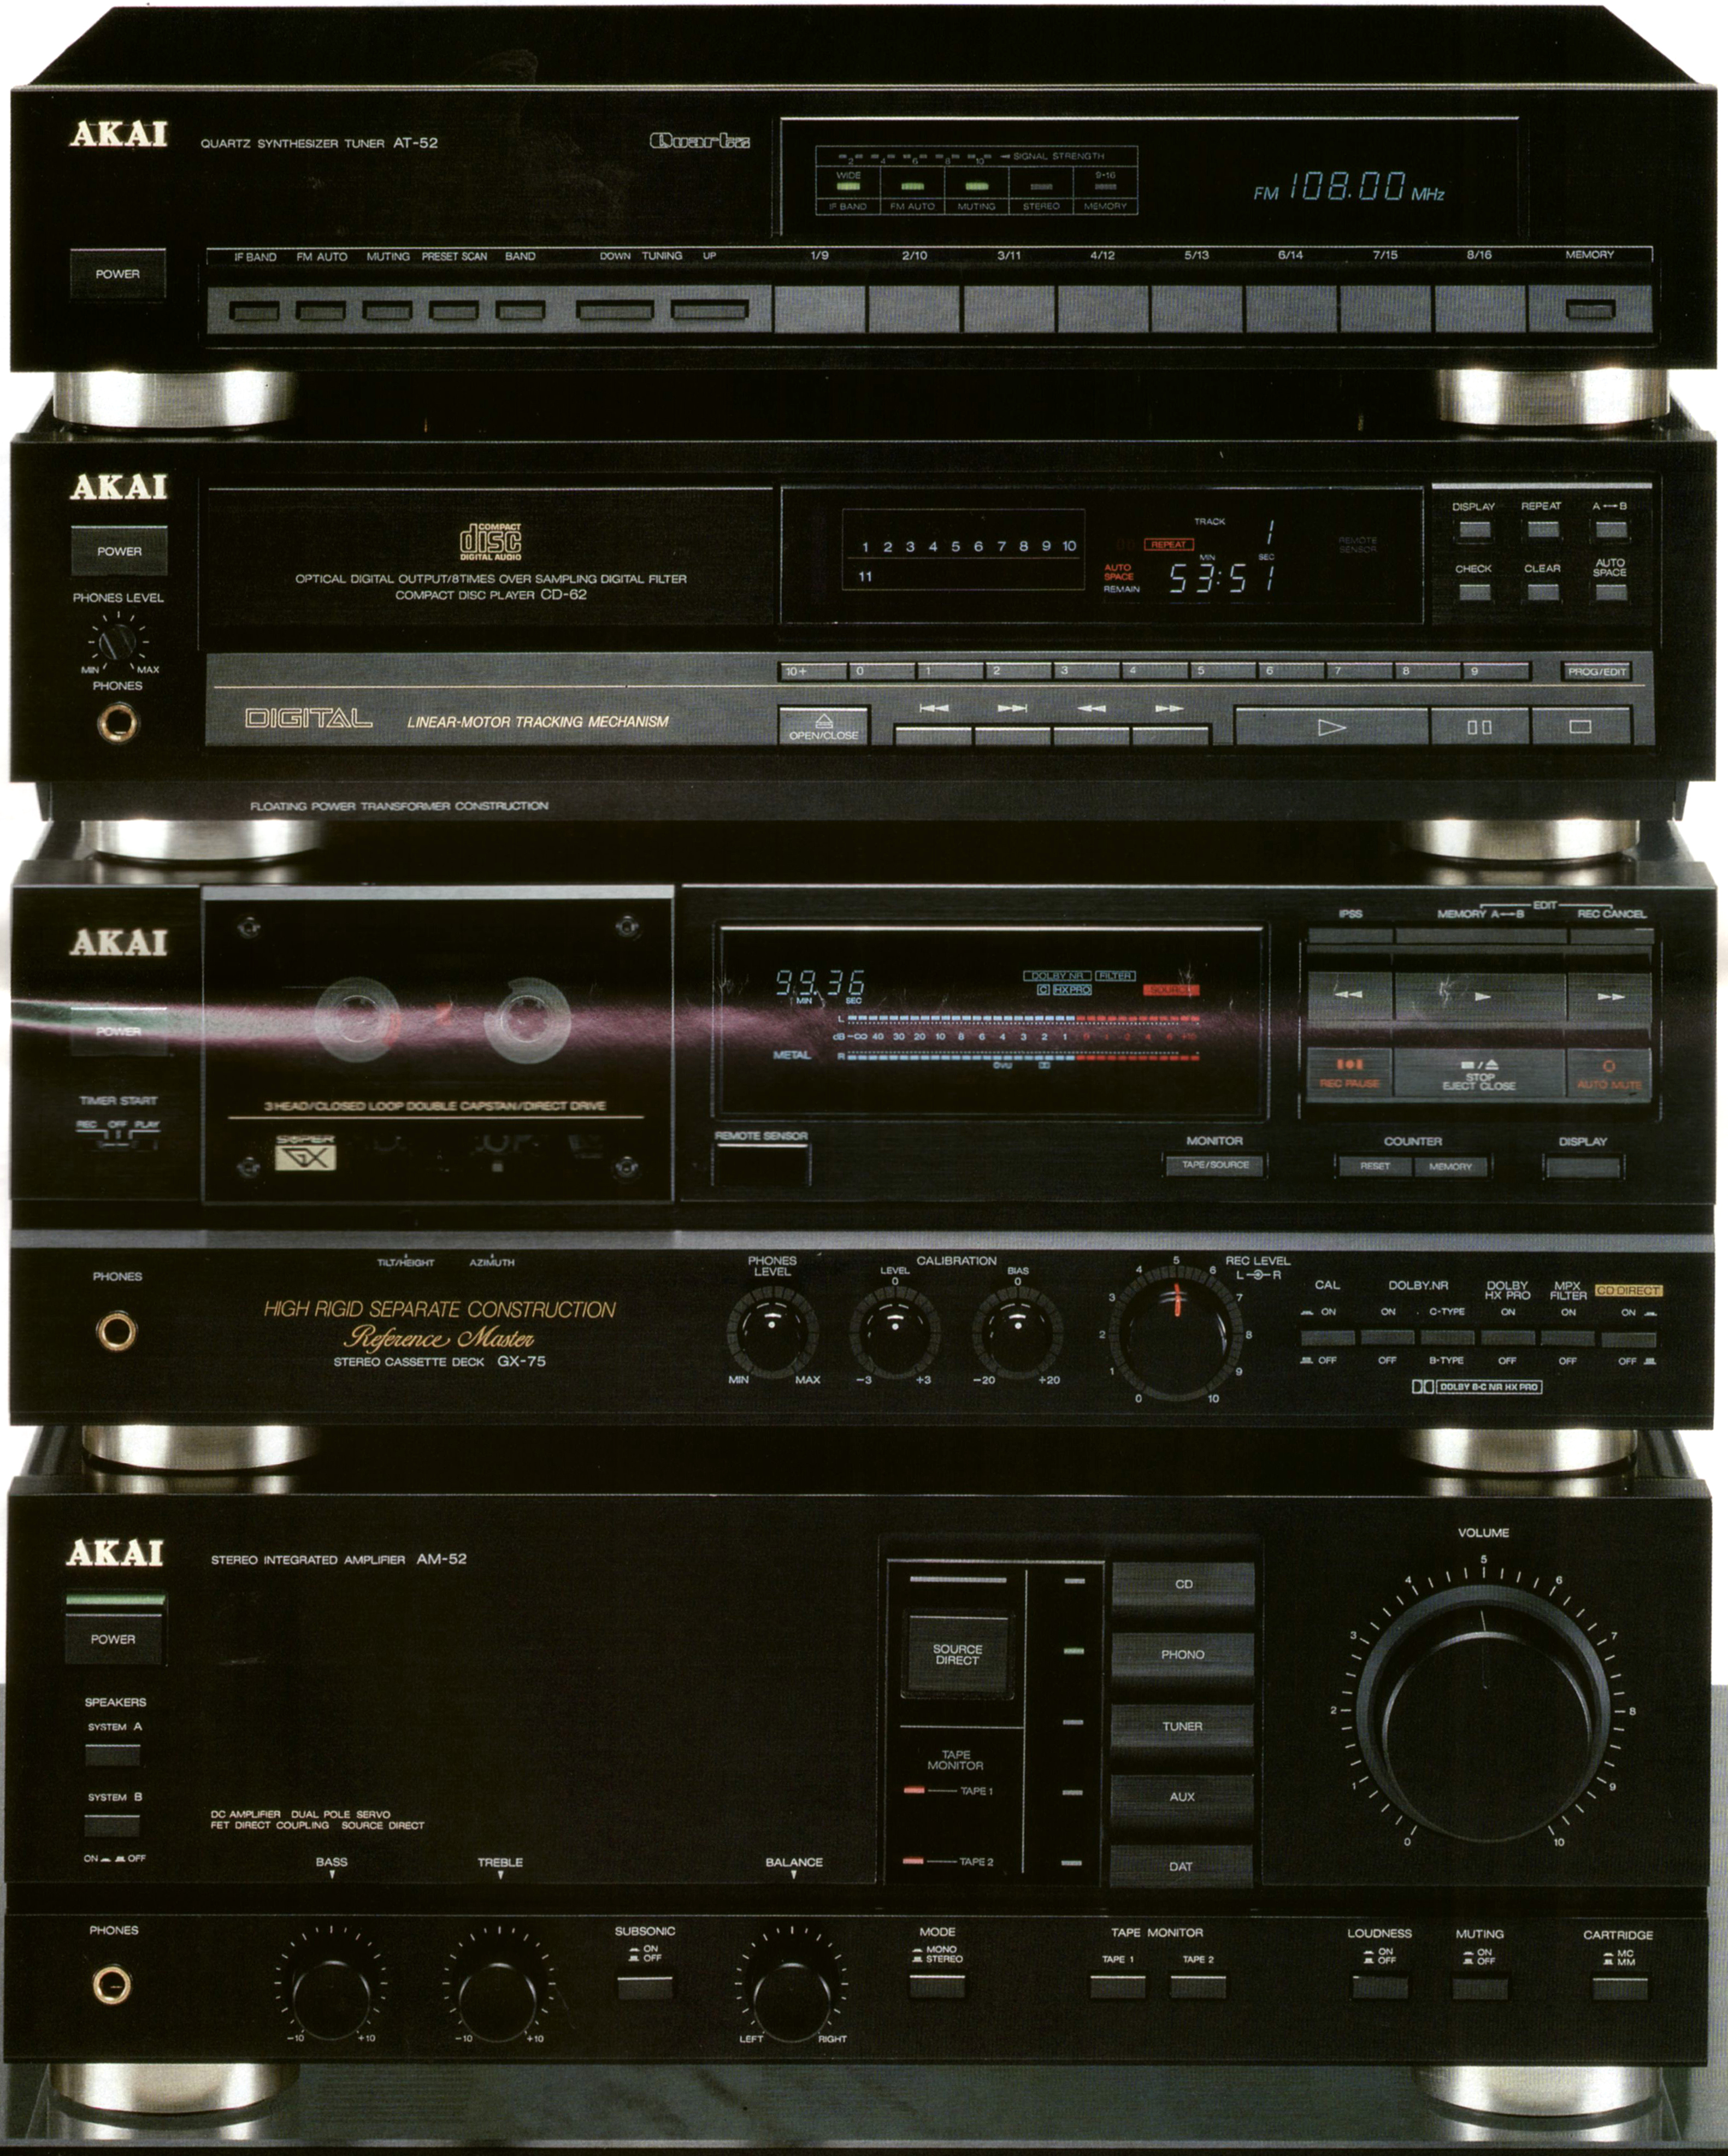 Akai AM-AT-52-CD-62-GX-75-Prospekt-19891.jpg